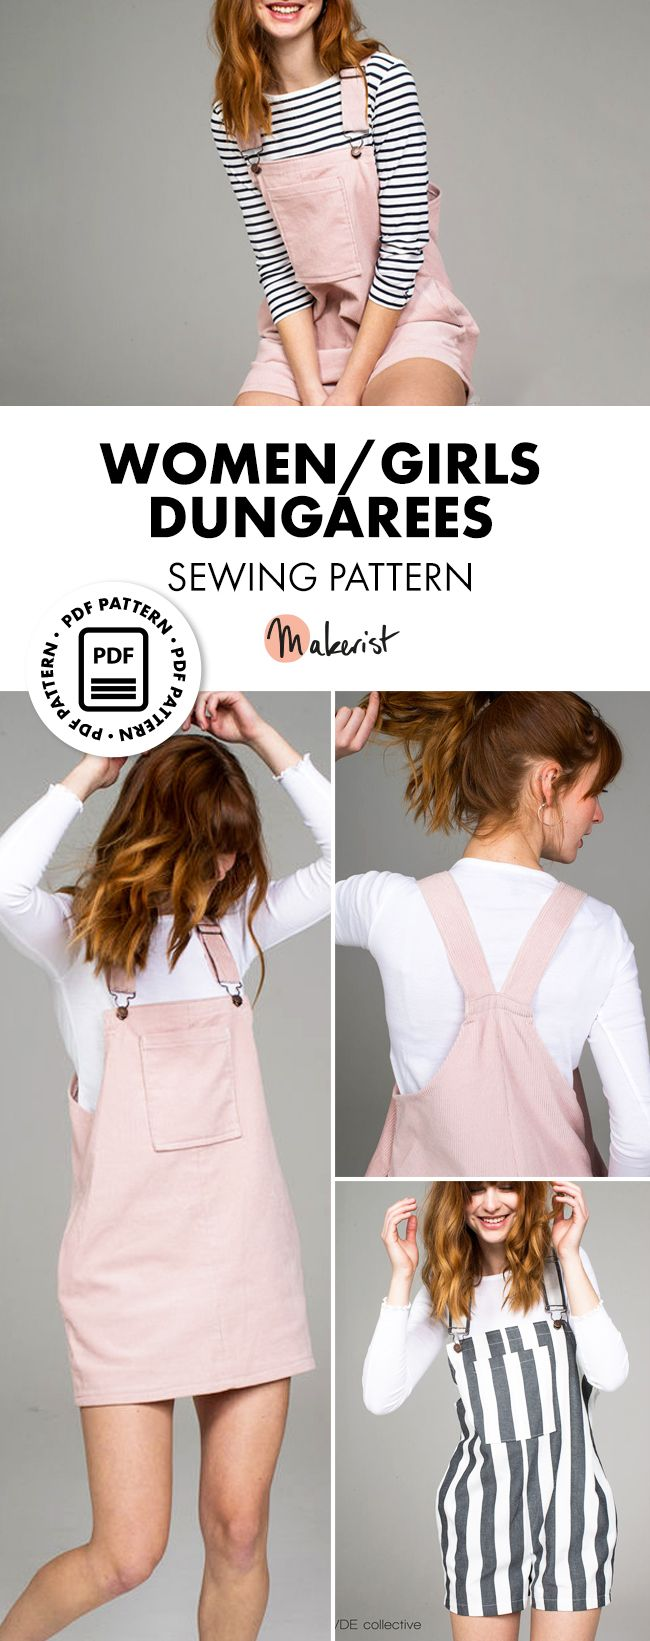 Women Dungarees & Pinafore dress sewing patterns #crochetdressoutfits